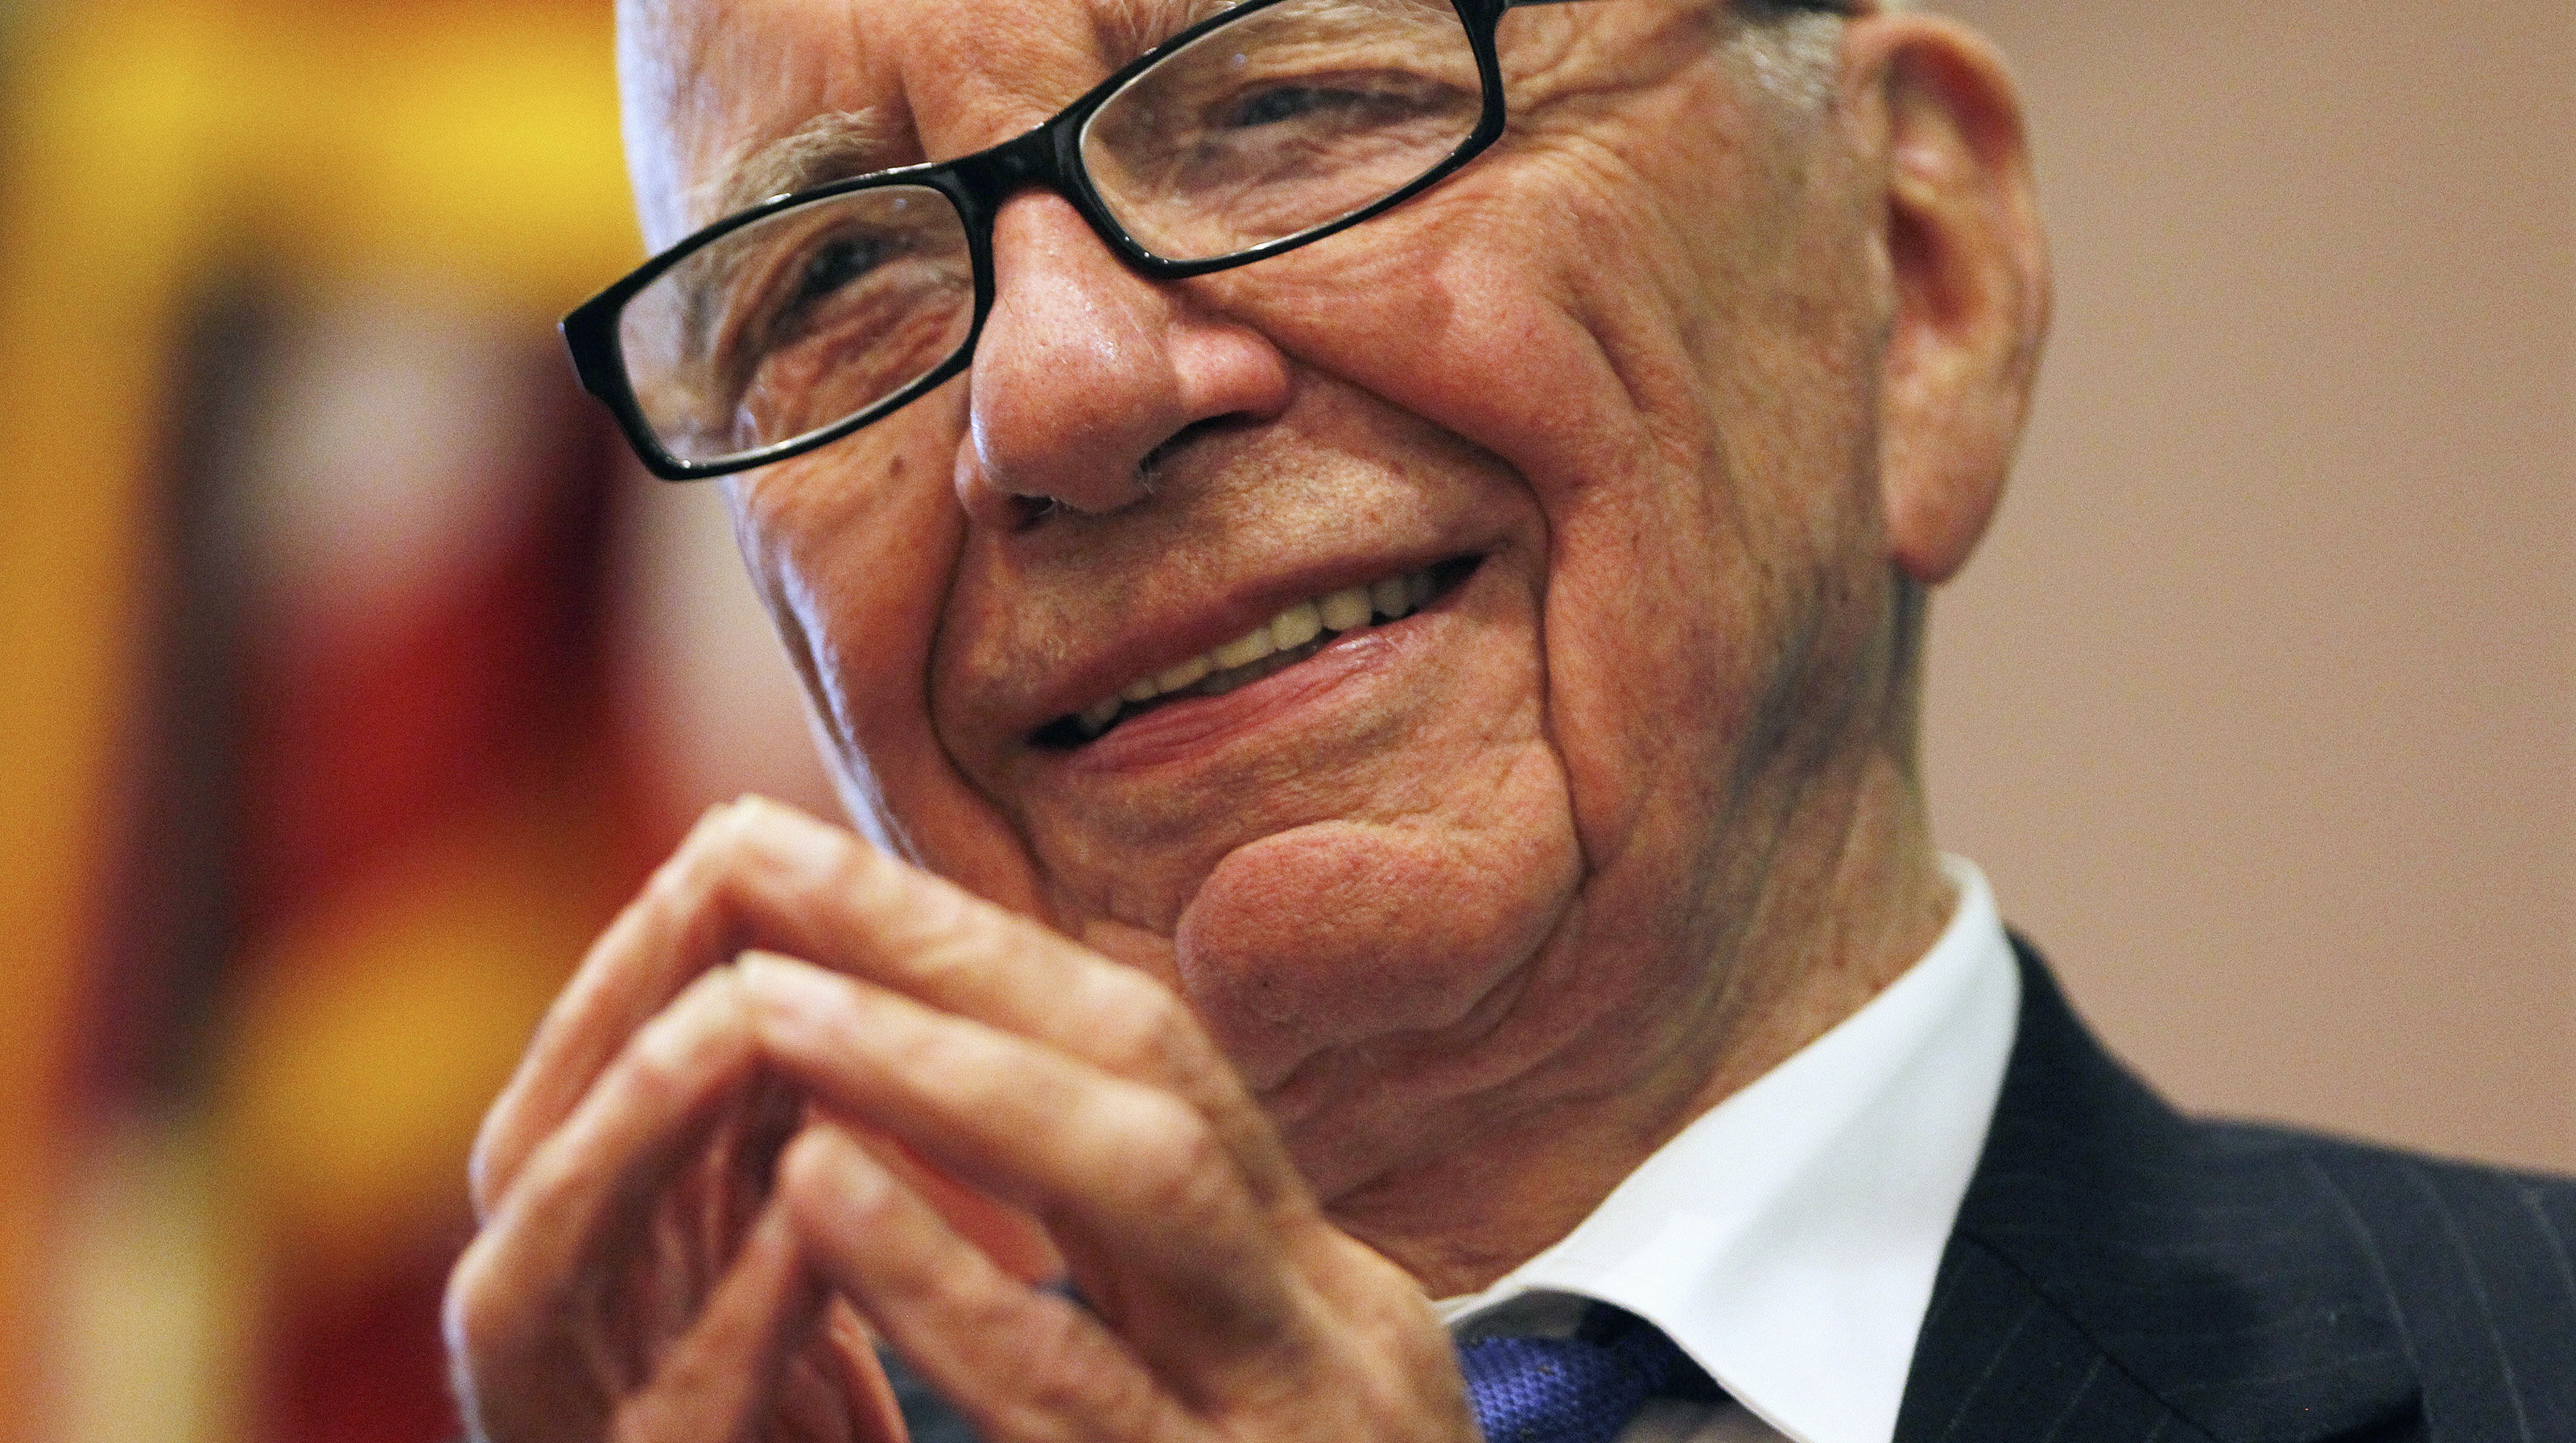 Fox News Women Furious Over Rupert Murdoch Comments On Sexual Misconduct